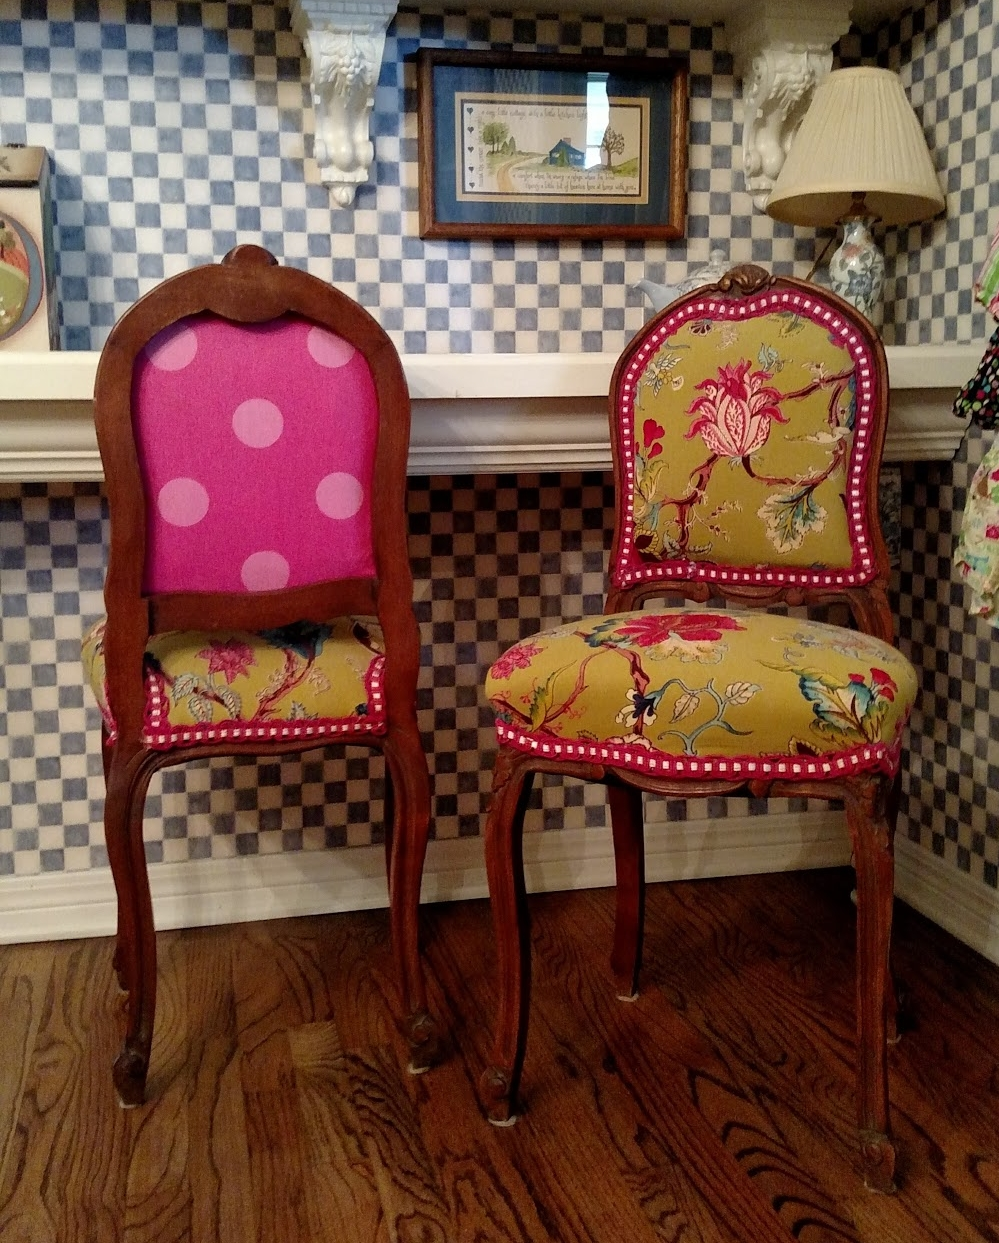 LIME AND PINK CHAIRS.jpg